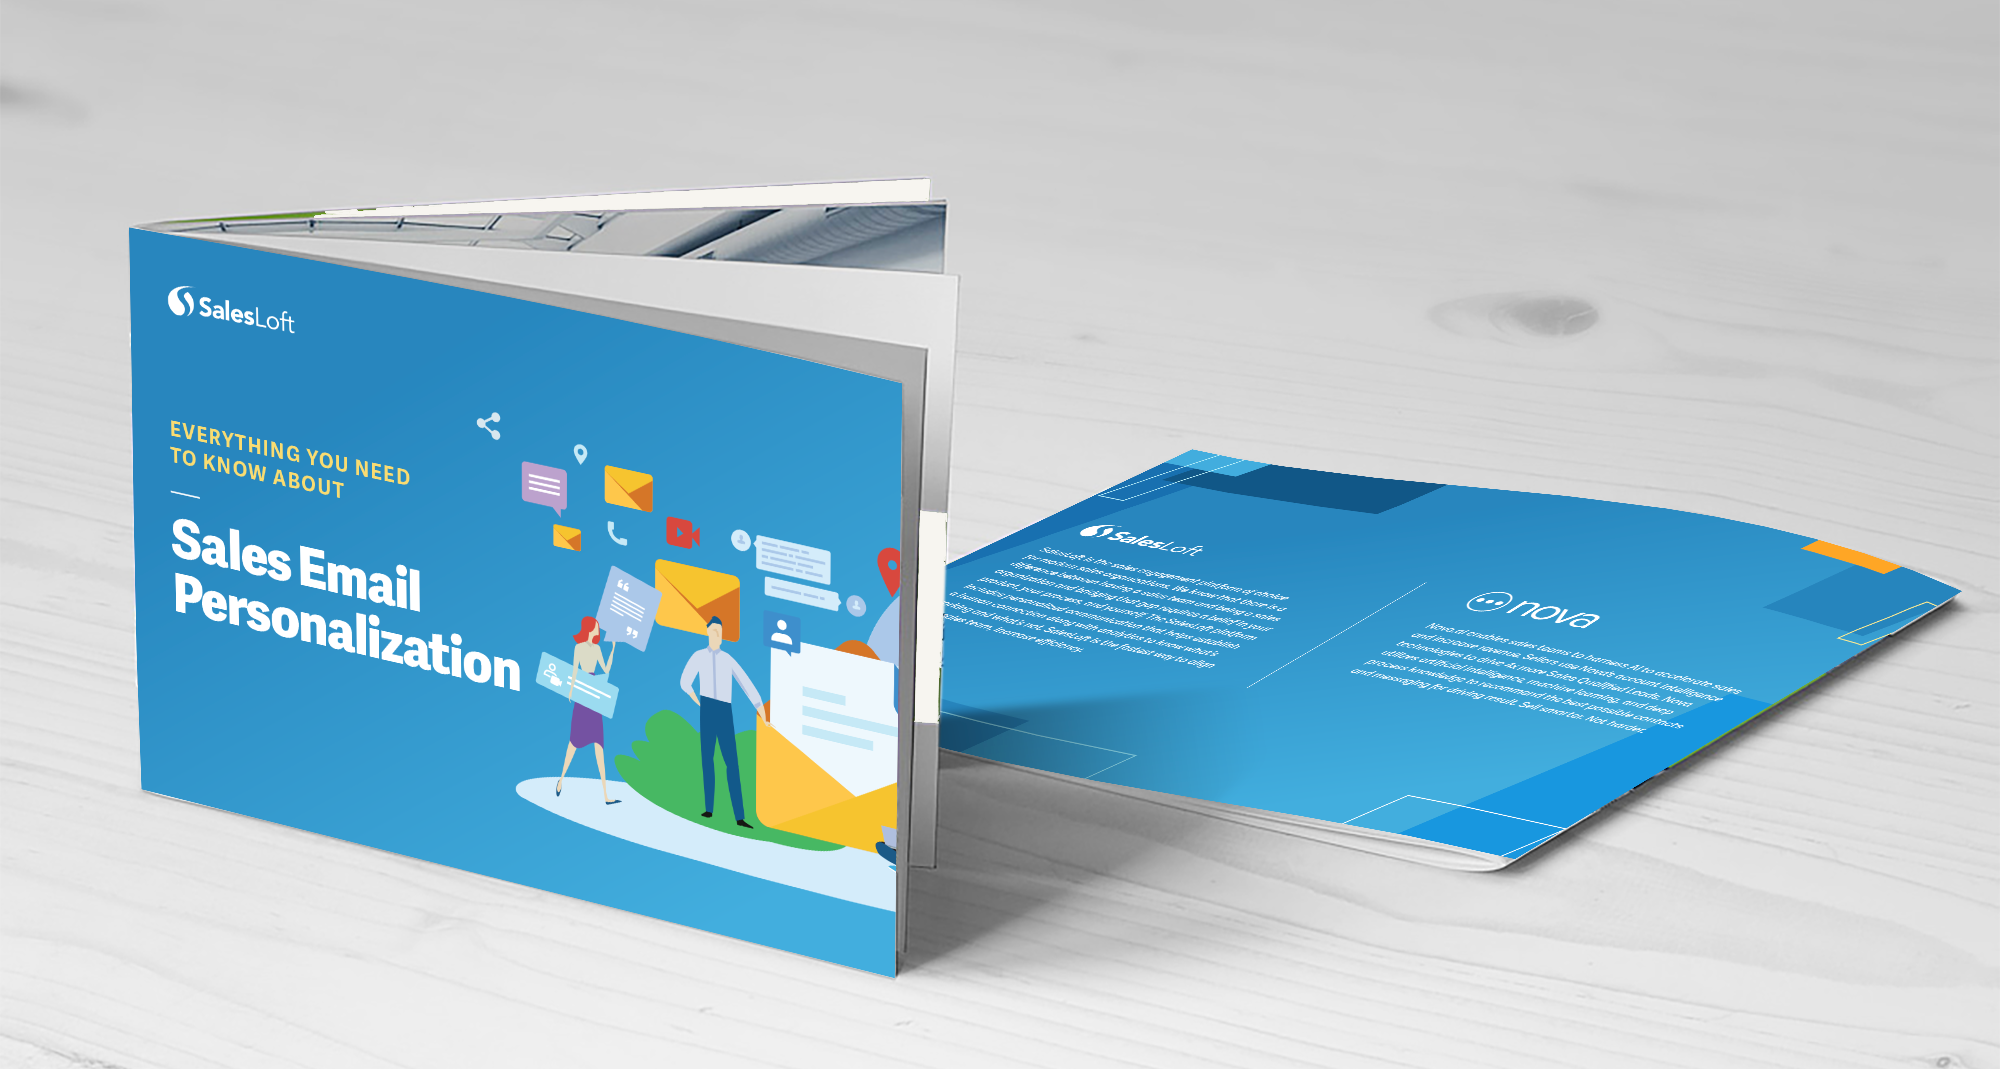 Sales Email Personalization eBook